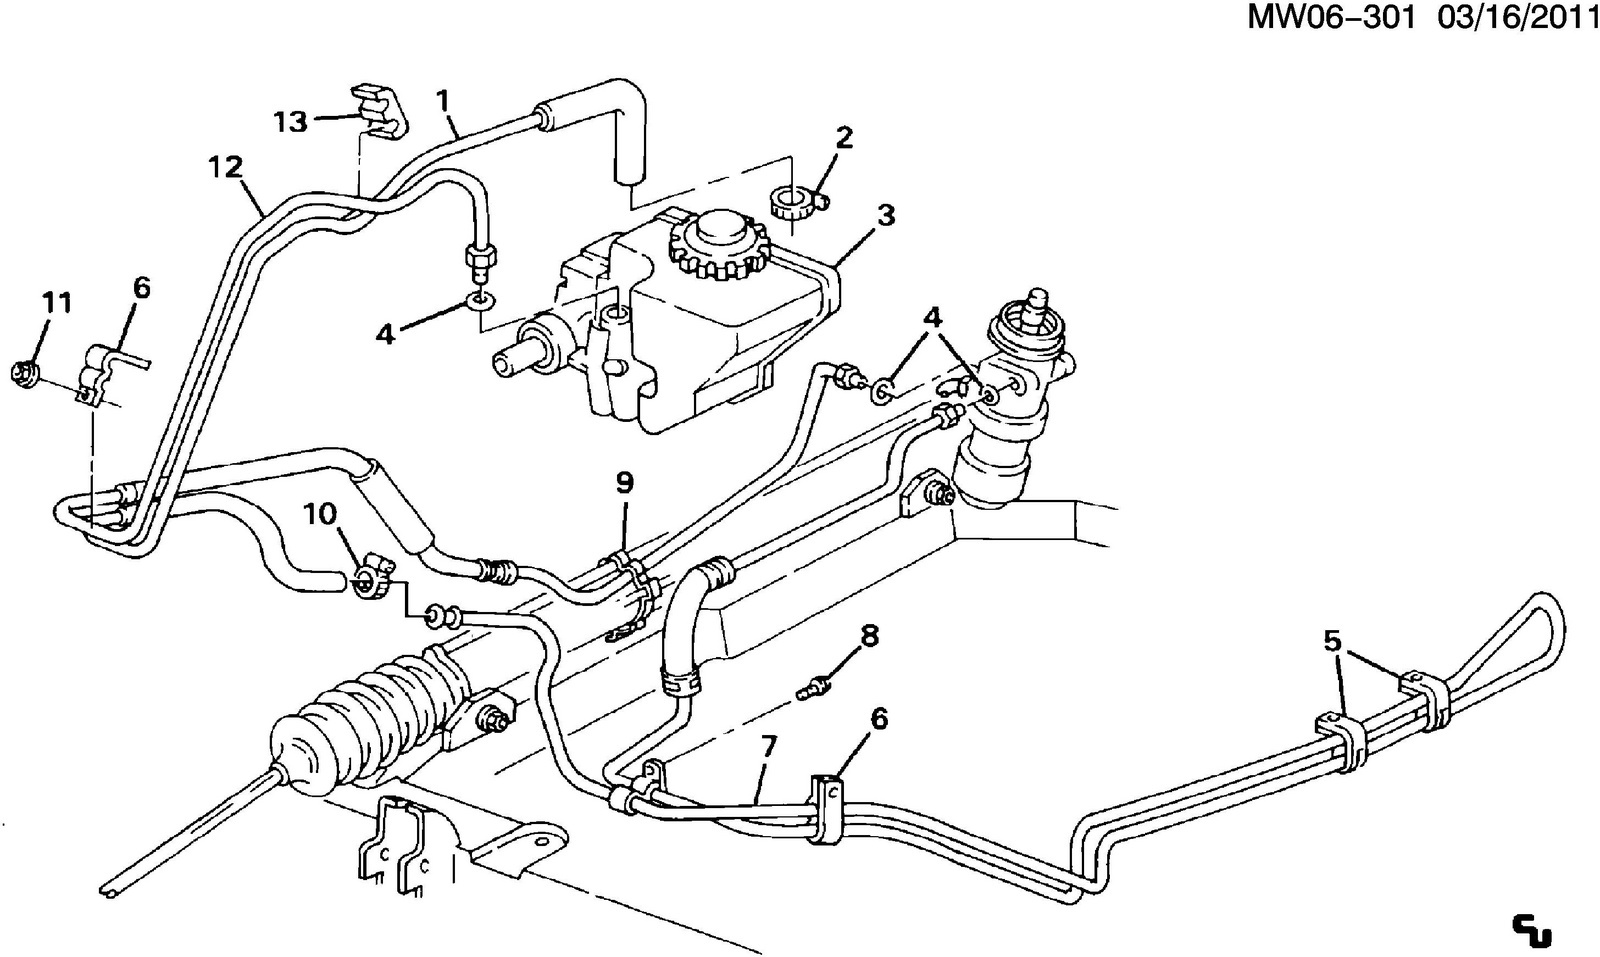 2000 Buick Century Fuel Line Diagram Wiring Diagram And